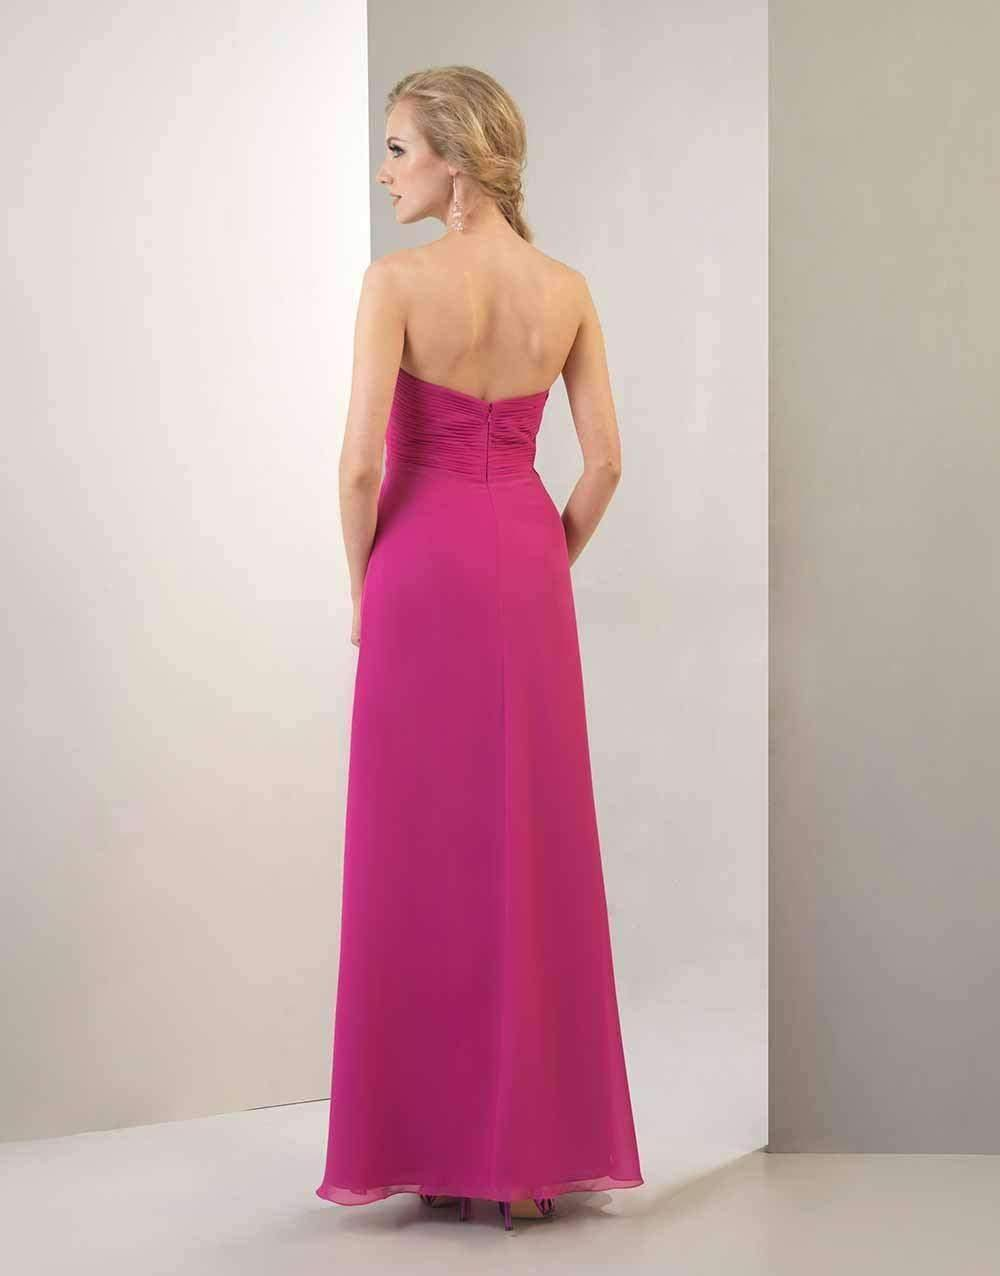 UK08 BRIGHT CERISE - INEZ - SALE - Adore Bridal and Occasion Wear